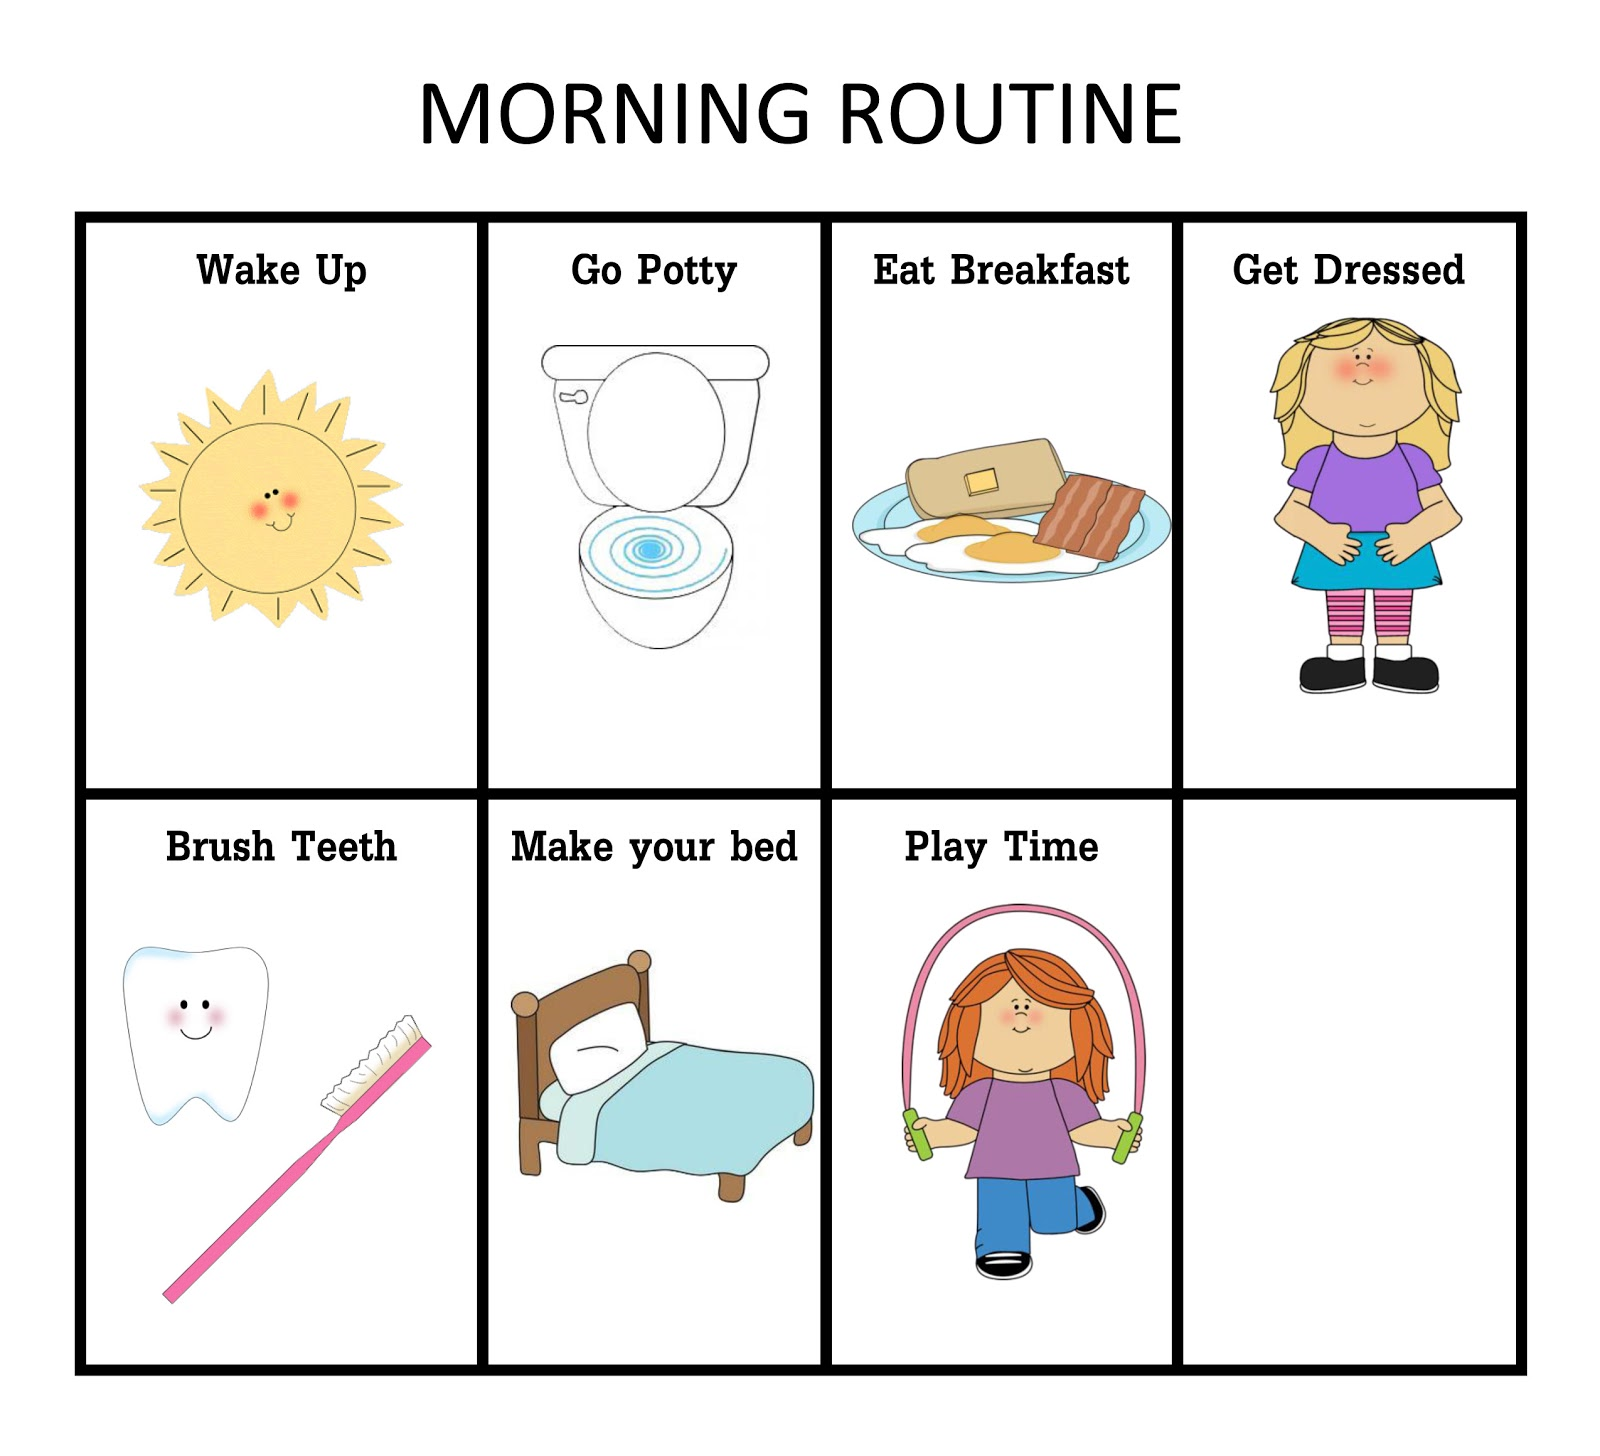 routine-clipart-morning-routine-chart-695710.jpg